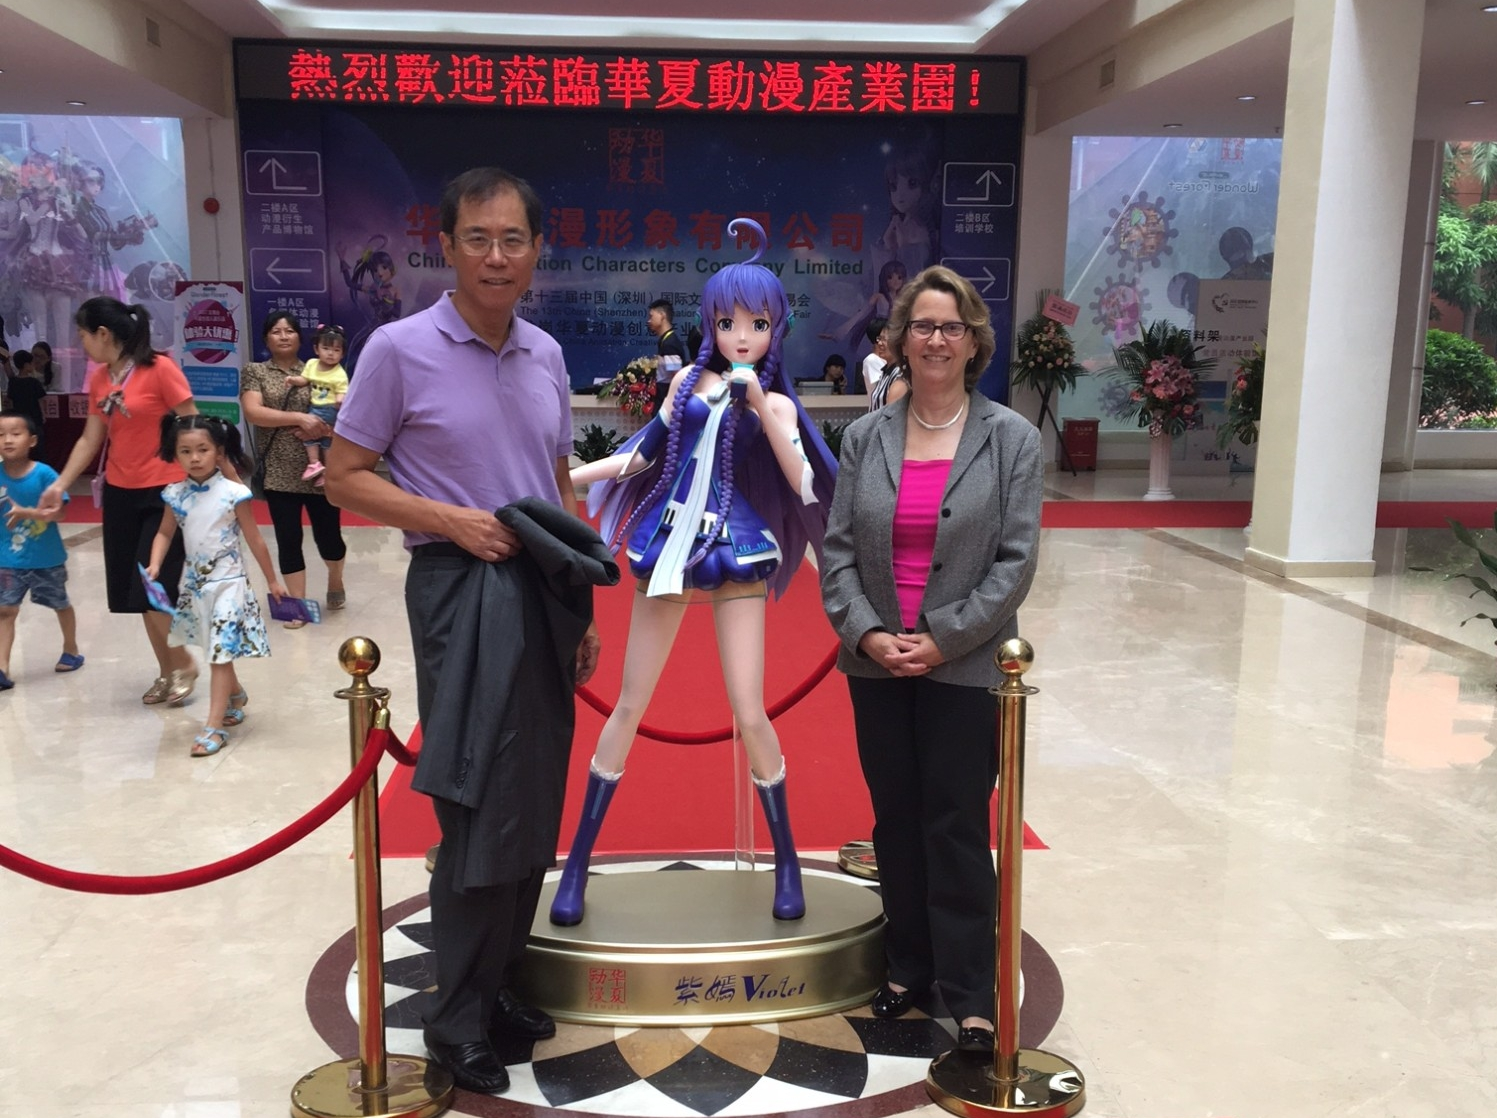 Susan Marquis and Hui Wang in China